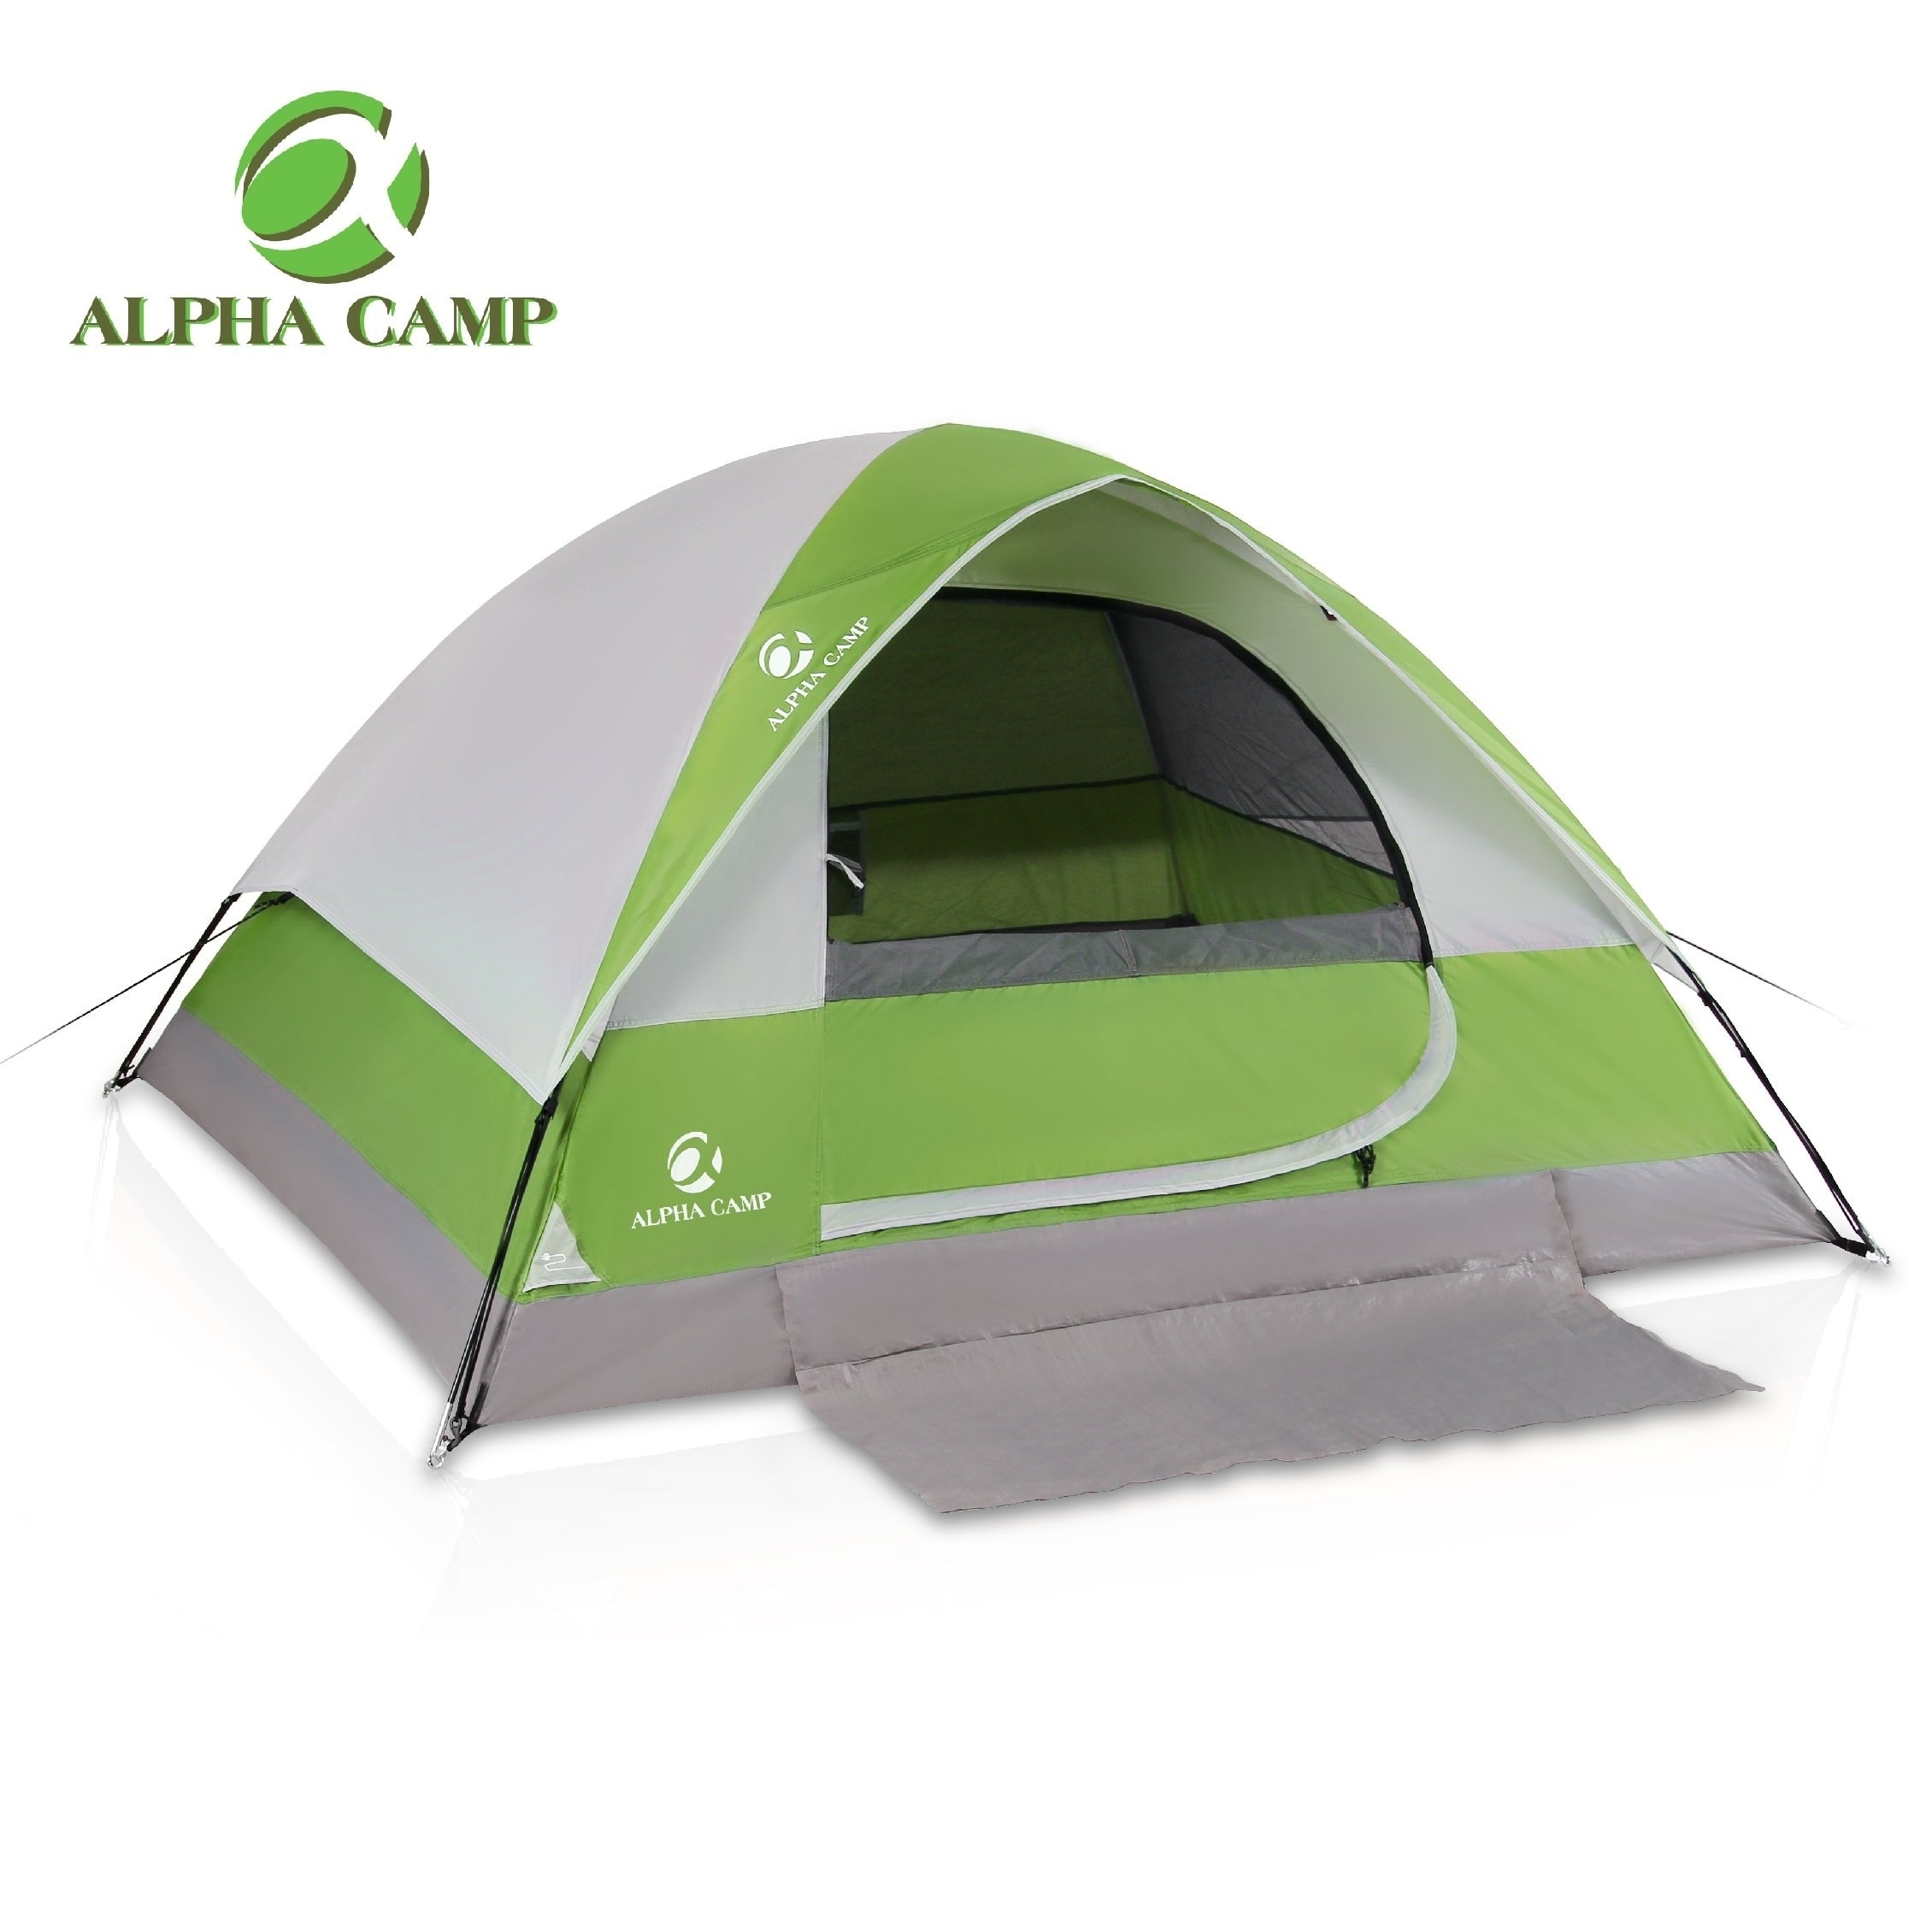 Camp Tent for Backpacking Waterproof Backpacking Outdoor Tents with Fiber-glass Poles for Outdoor Camping 2 Person Portable Tent